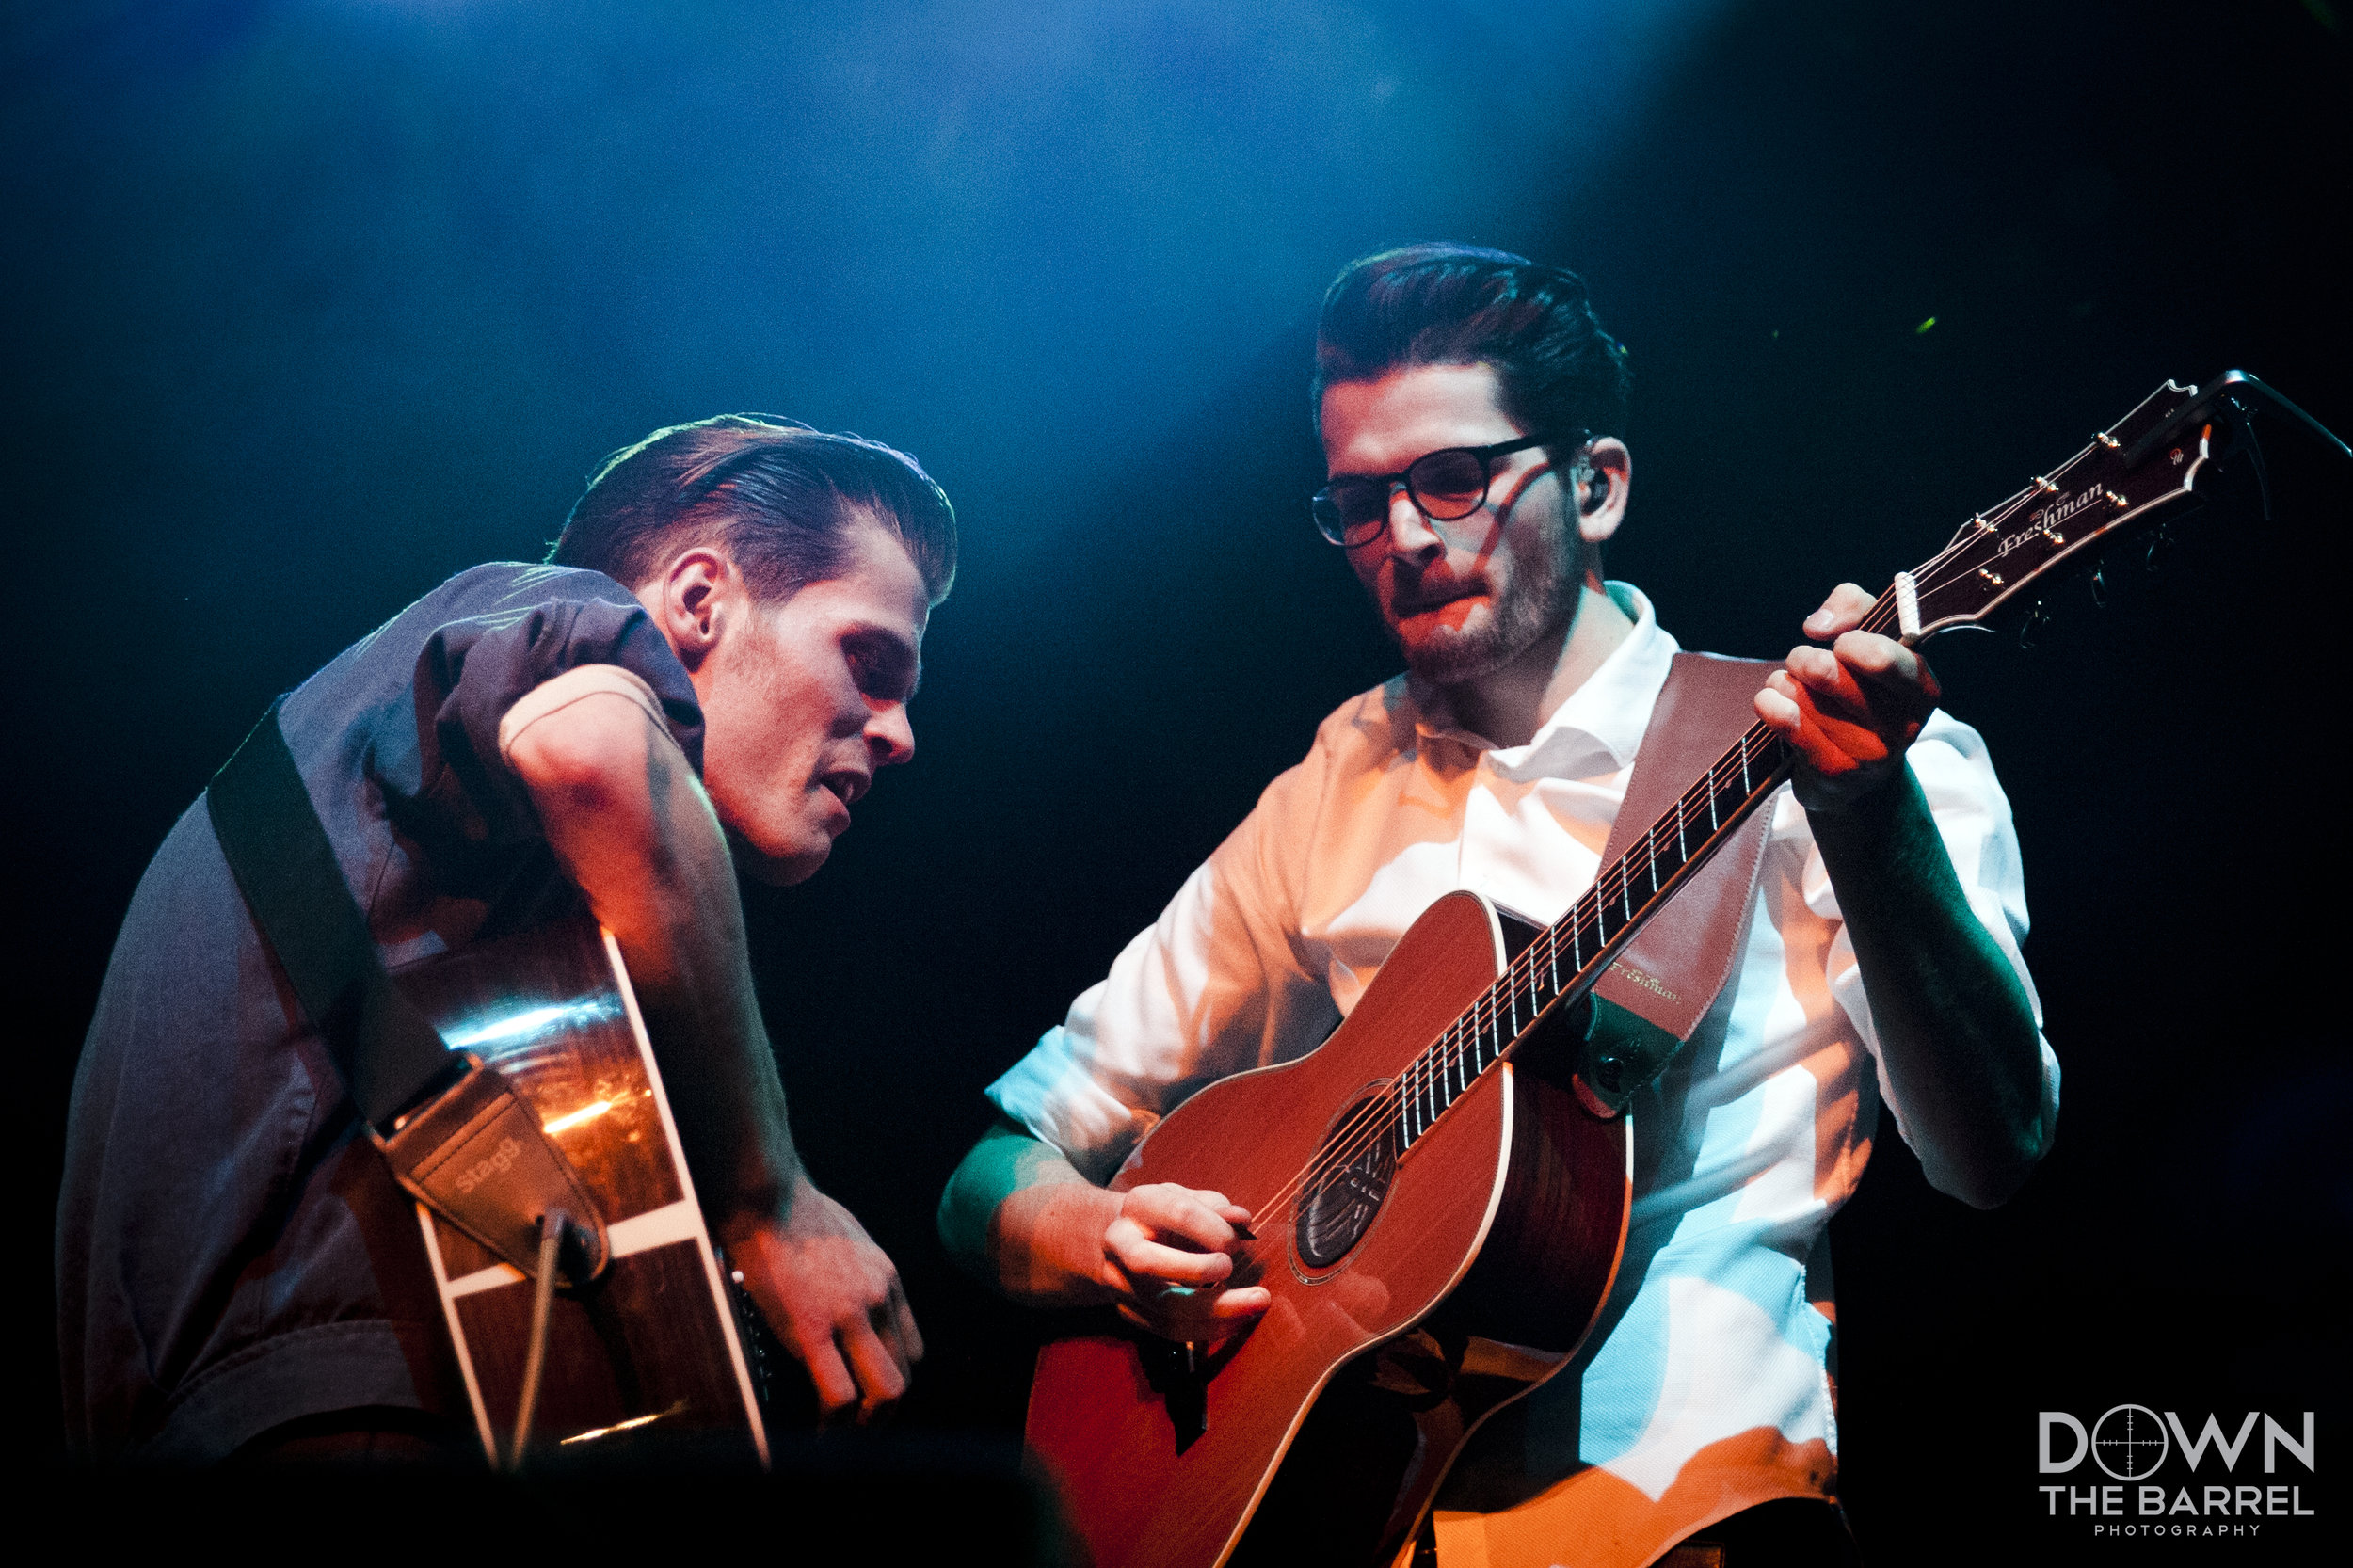 Hudson Taylor 1 by Steve Dempsey - 26th Feb 2015.jpg